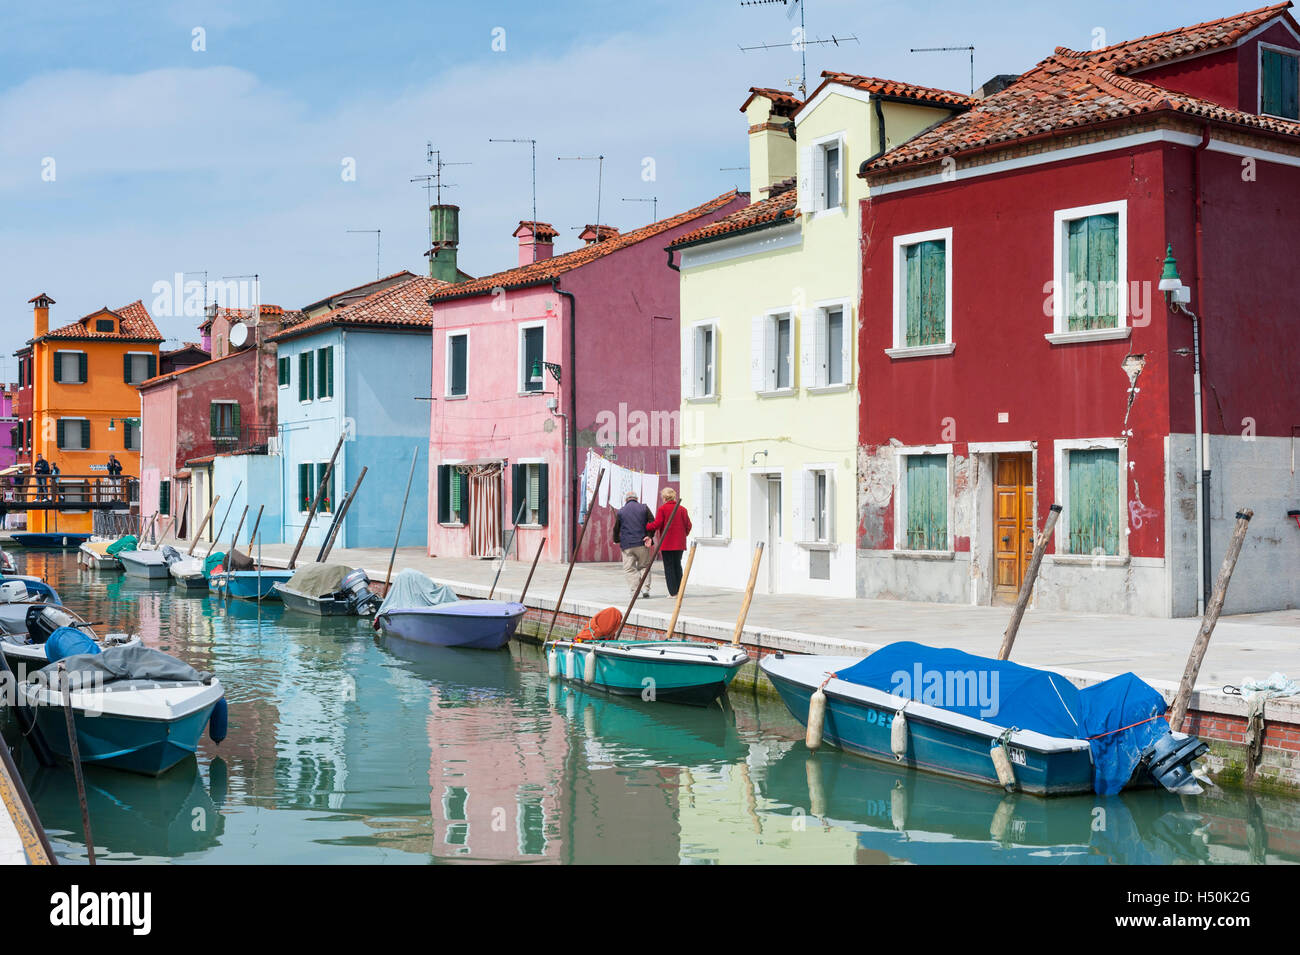 Colourful houses in Burano , Venice, Italy - Stock Image